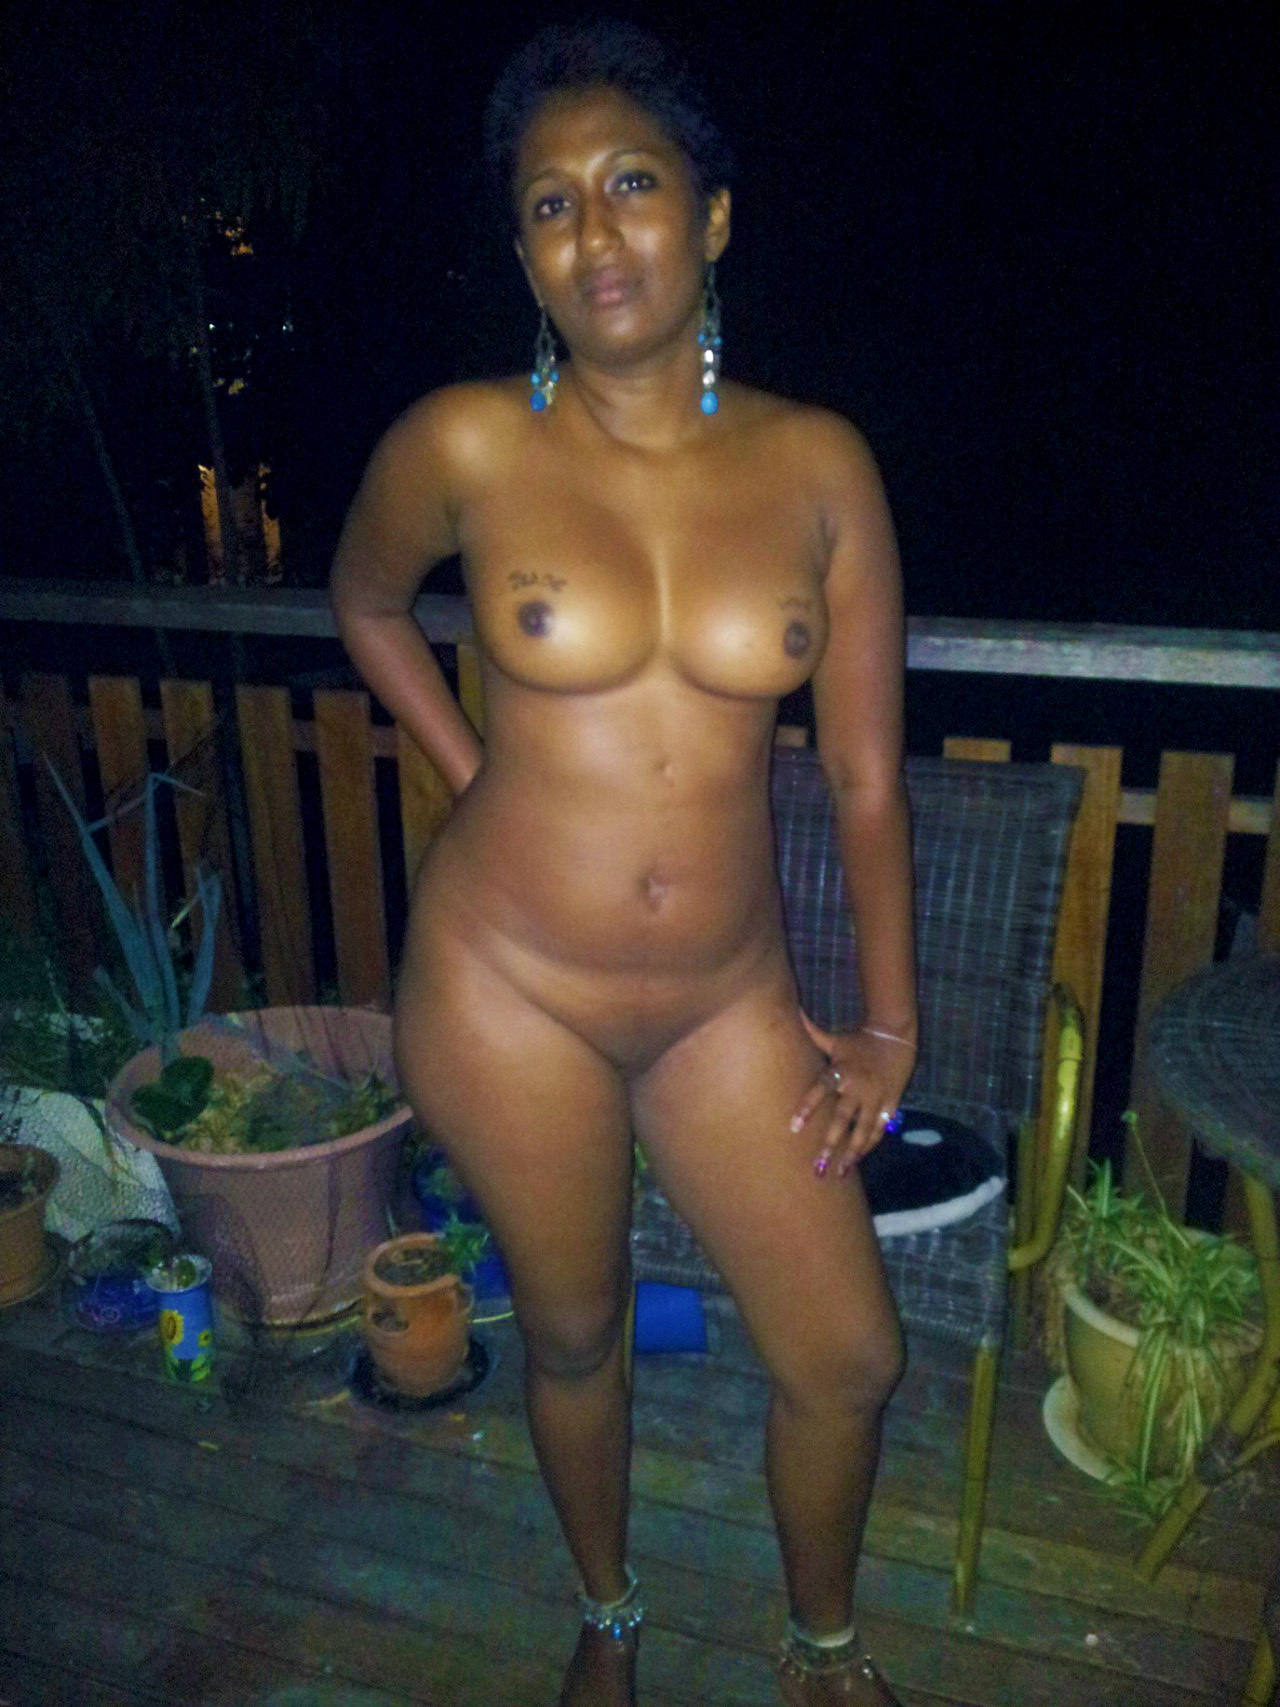 Amature north carolina nude